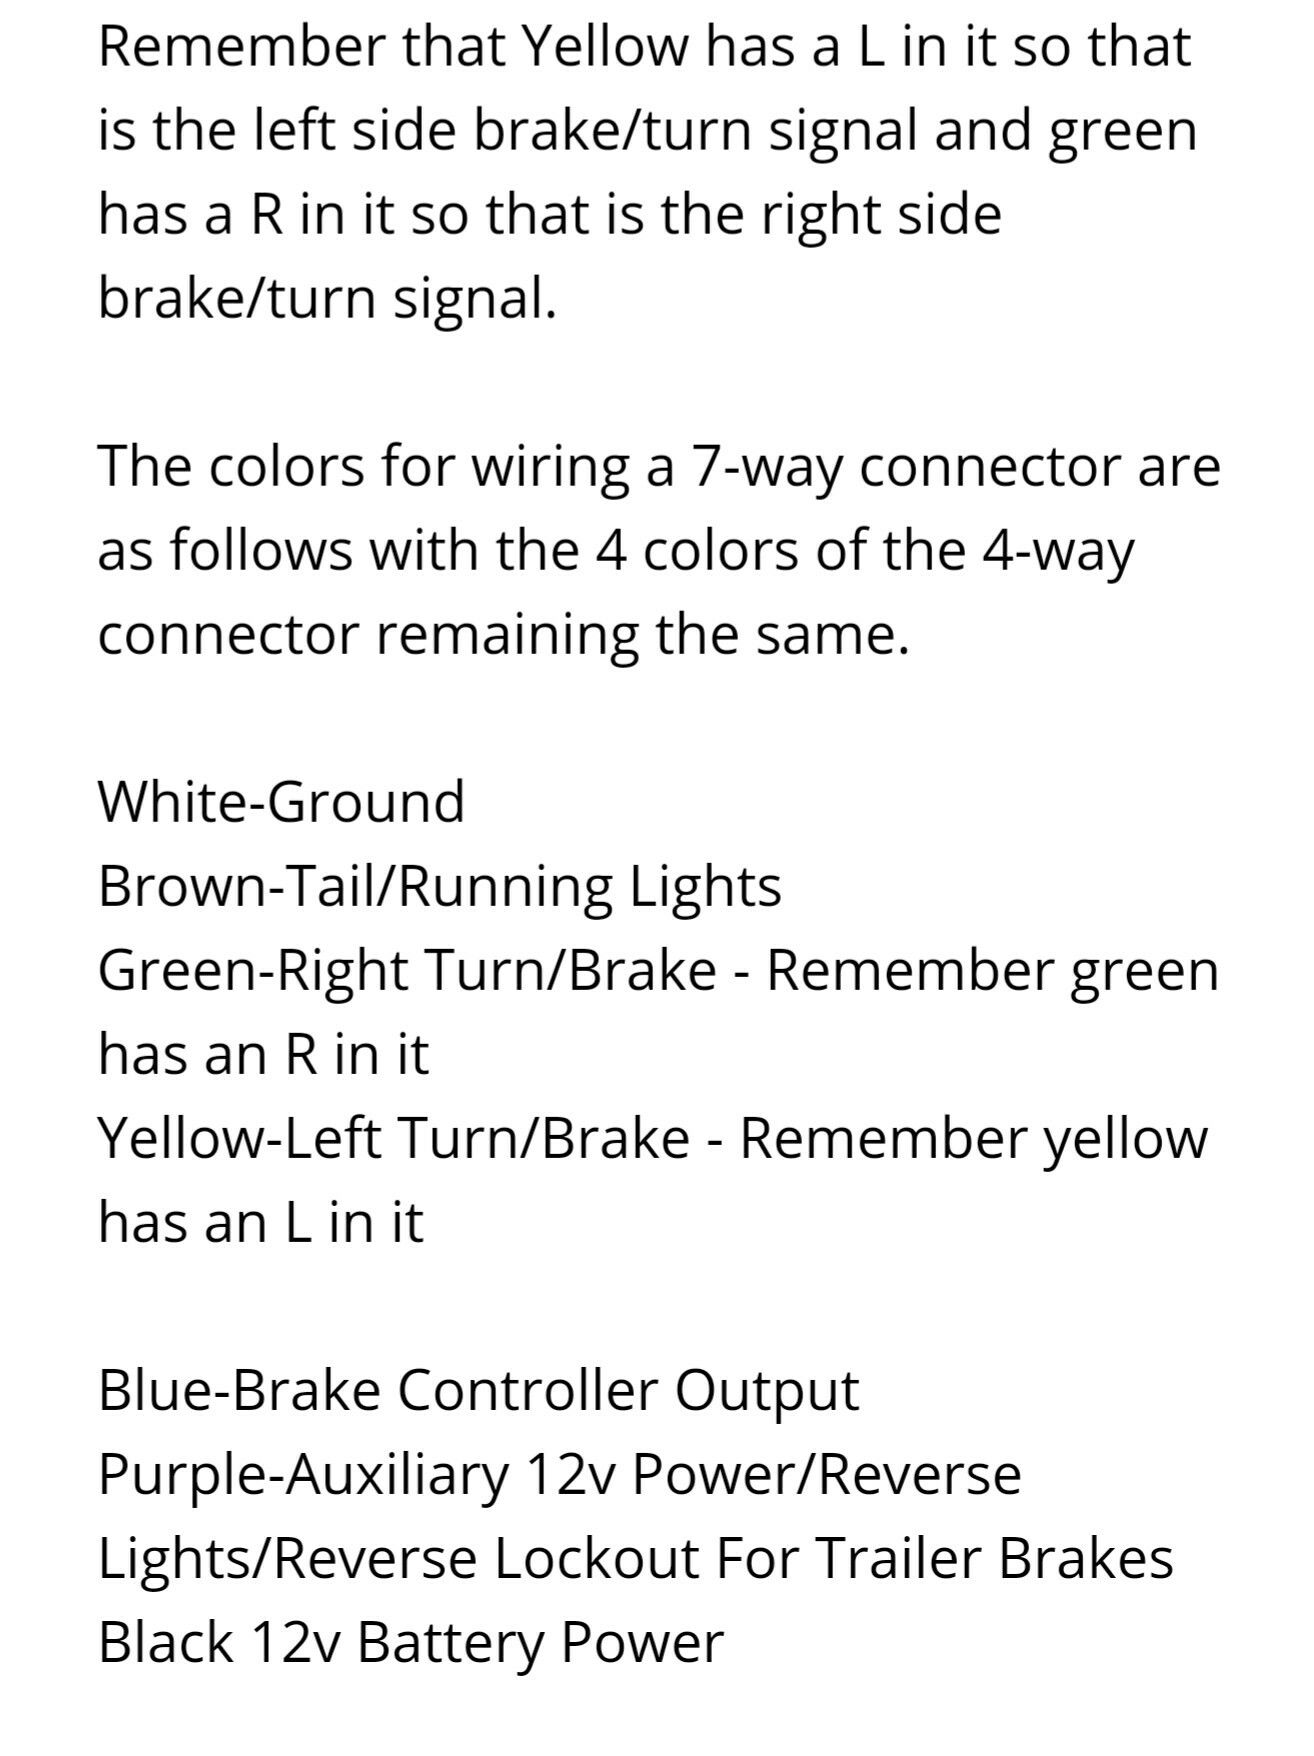 Color Code For Trailer Wires Agricultural Science Pinterest Wiring